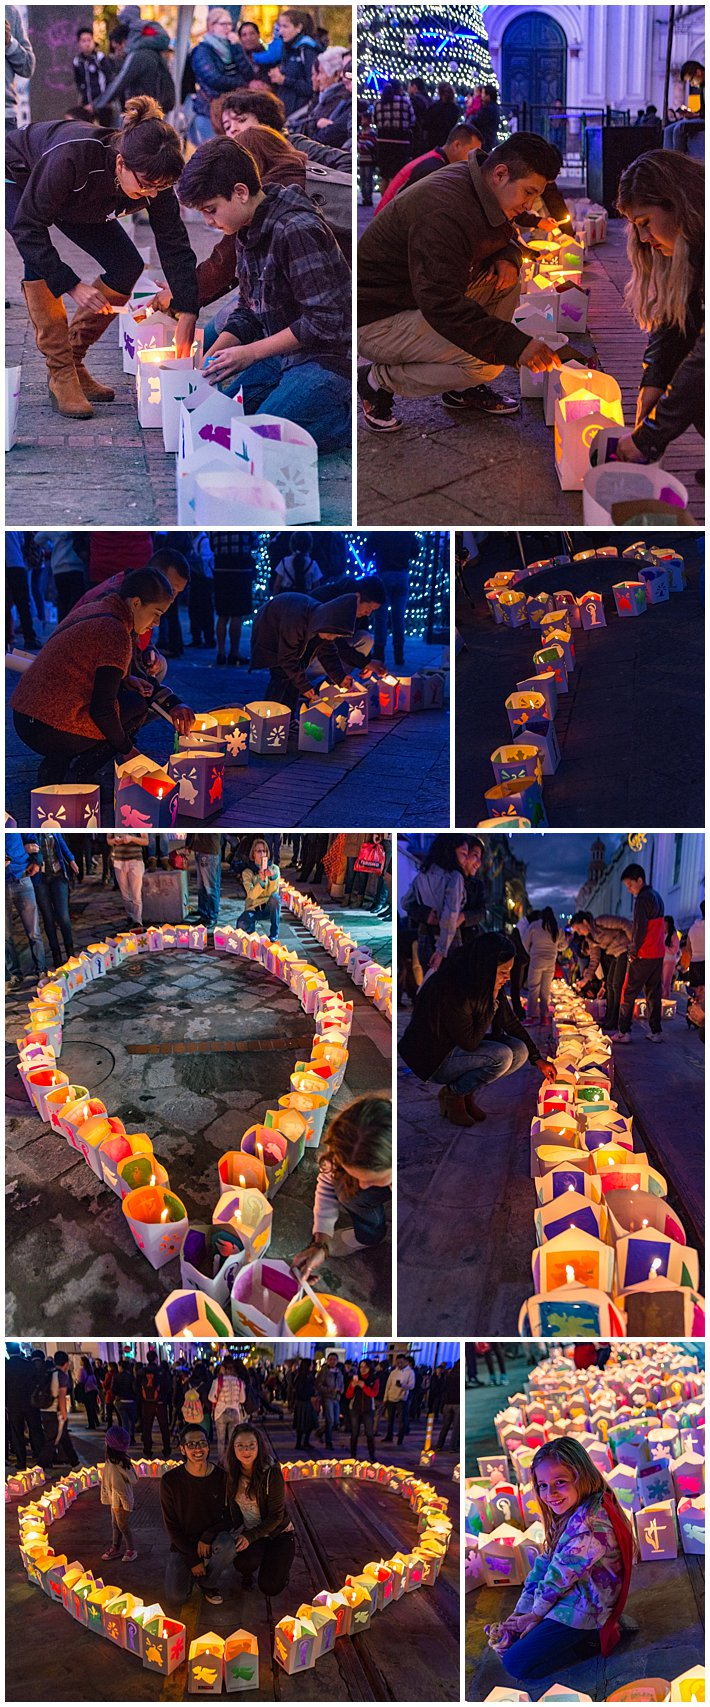 Festival of Lights 2016, Cuenca, Ecuador - candles lit